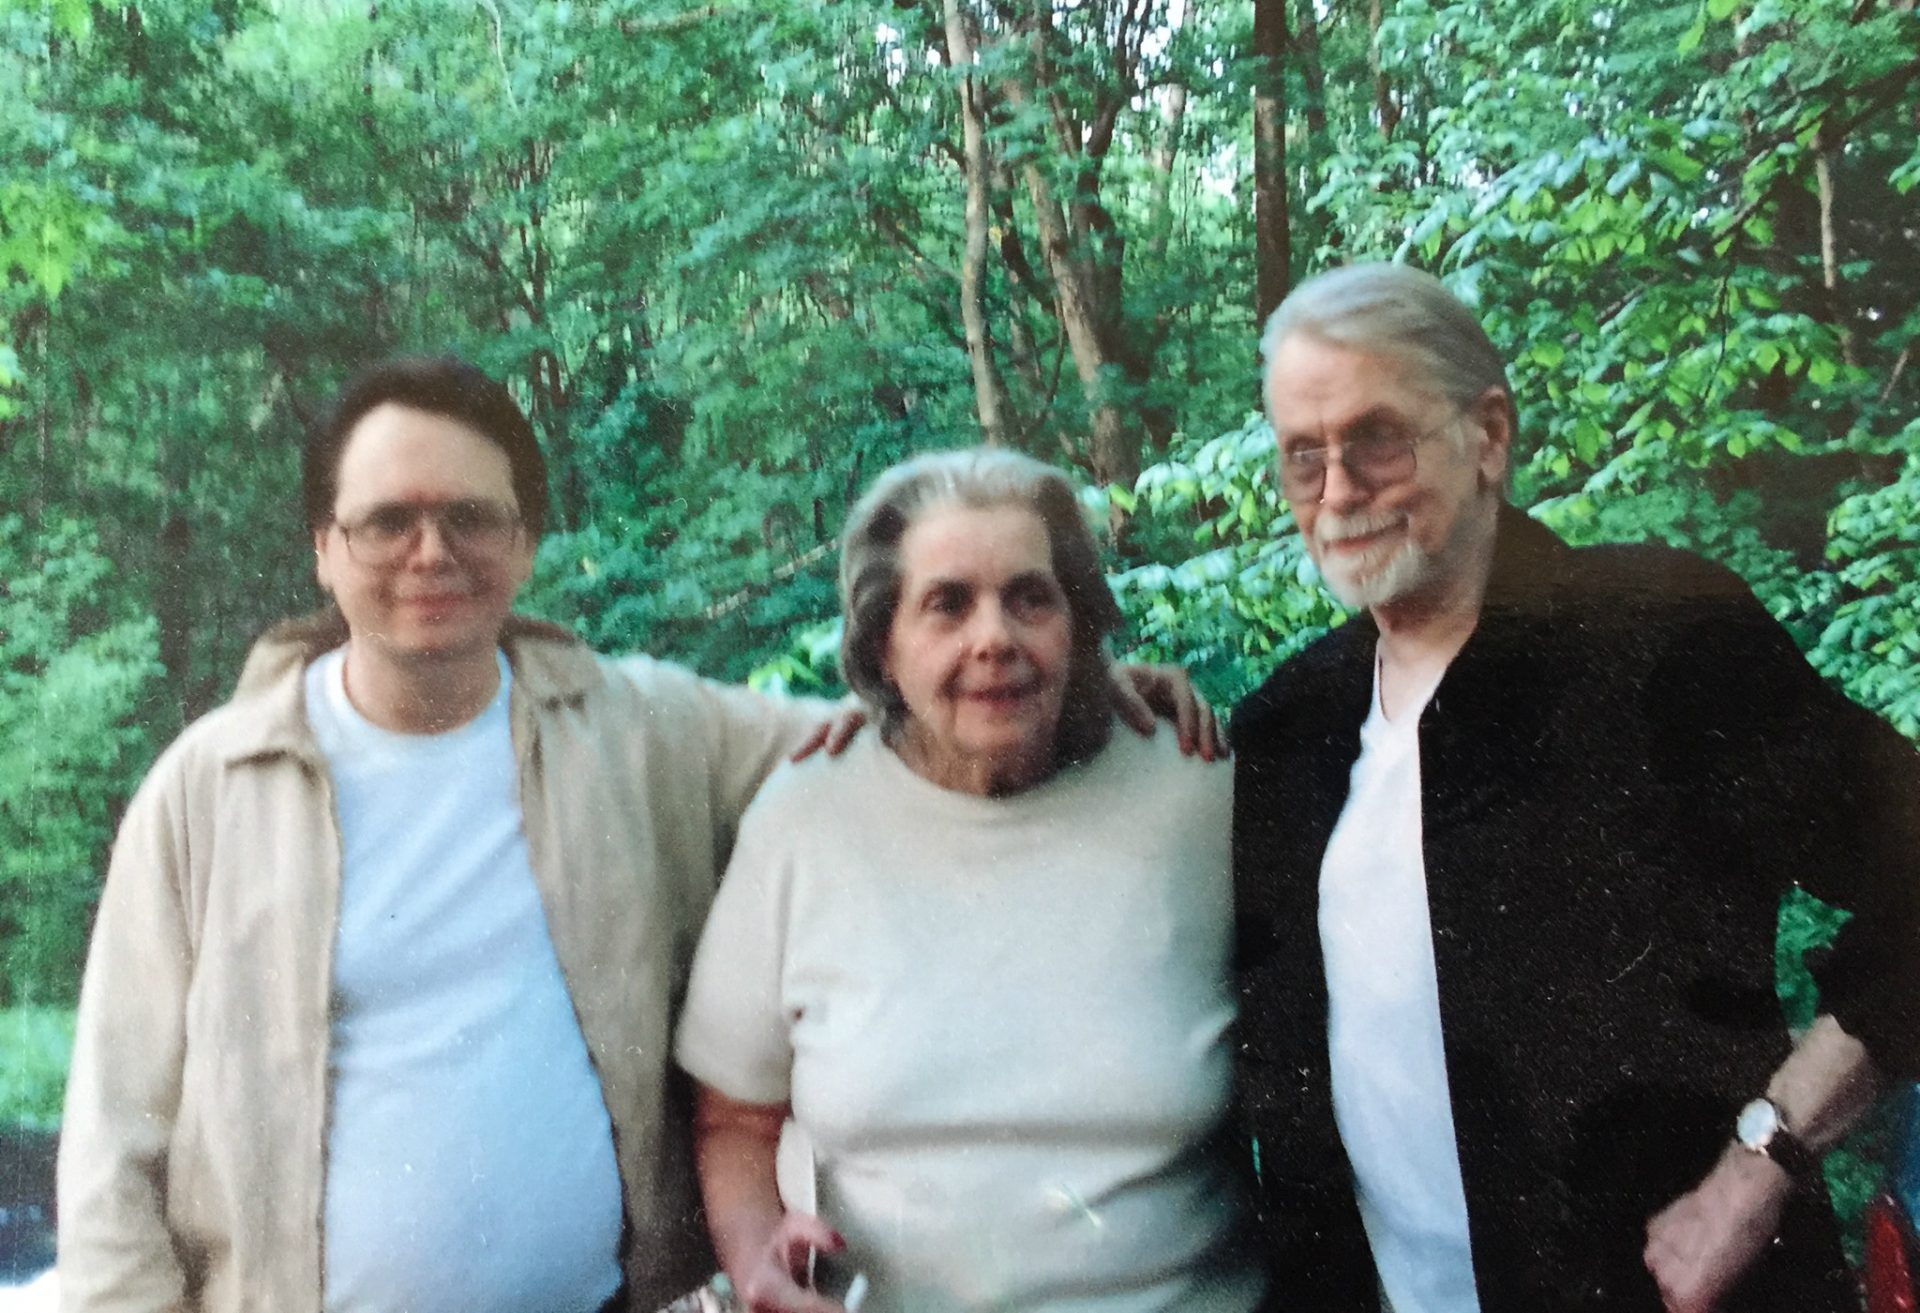 Left to Right: Myself, Mom and Dad.